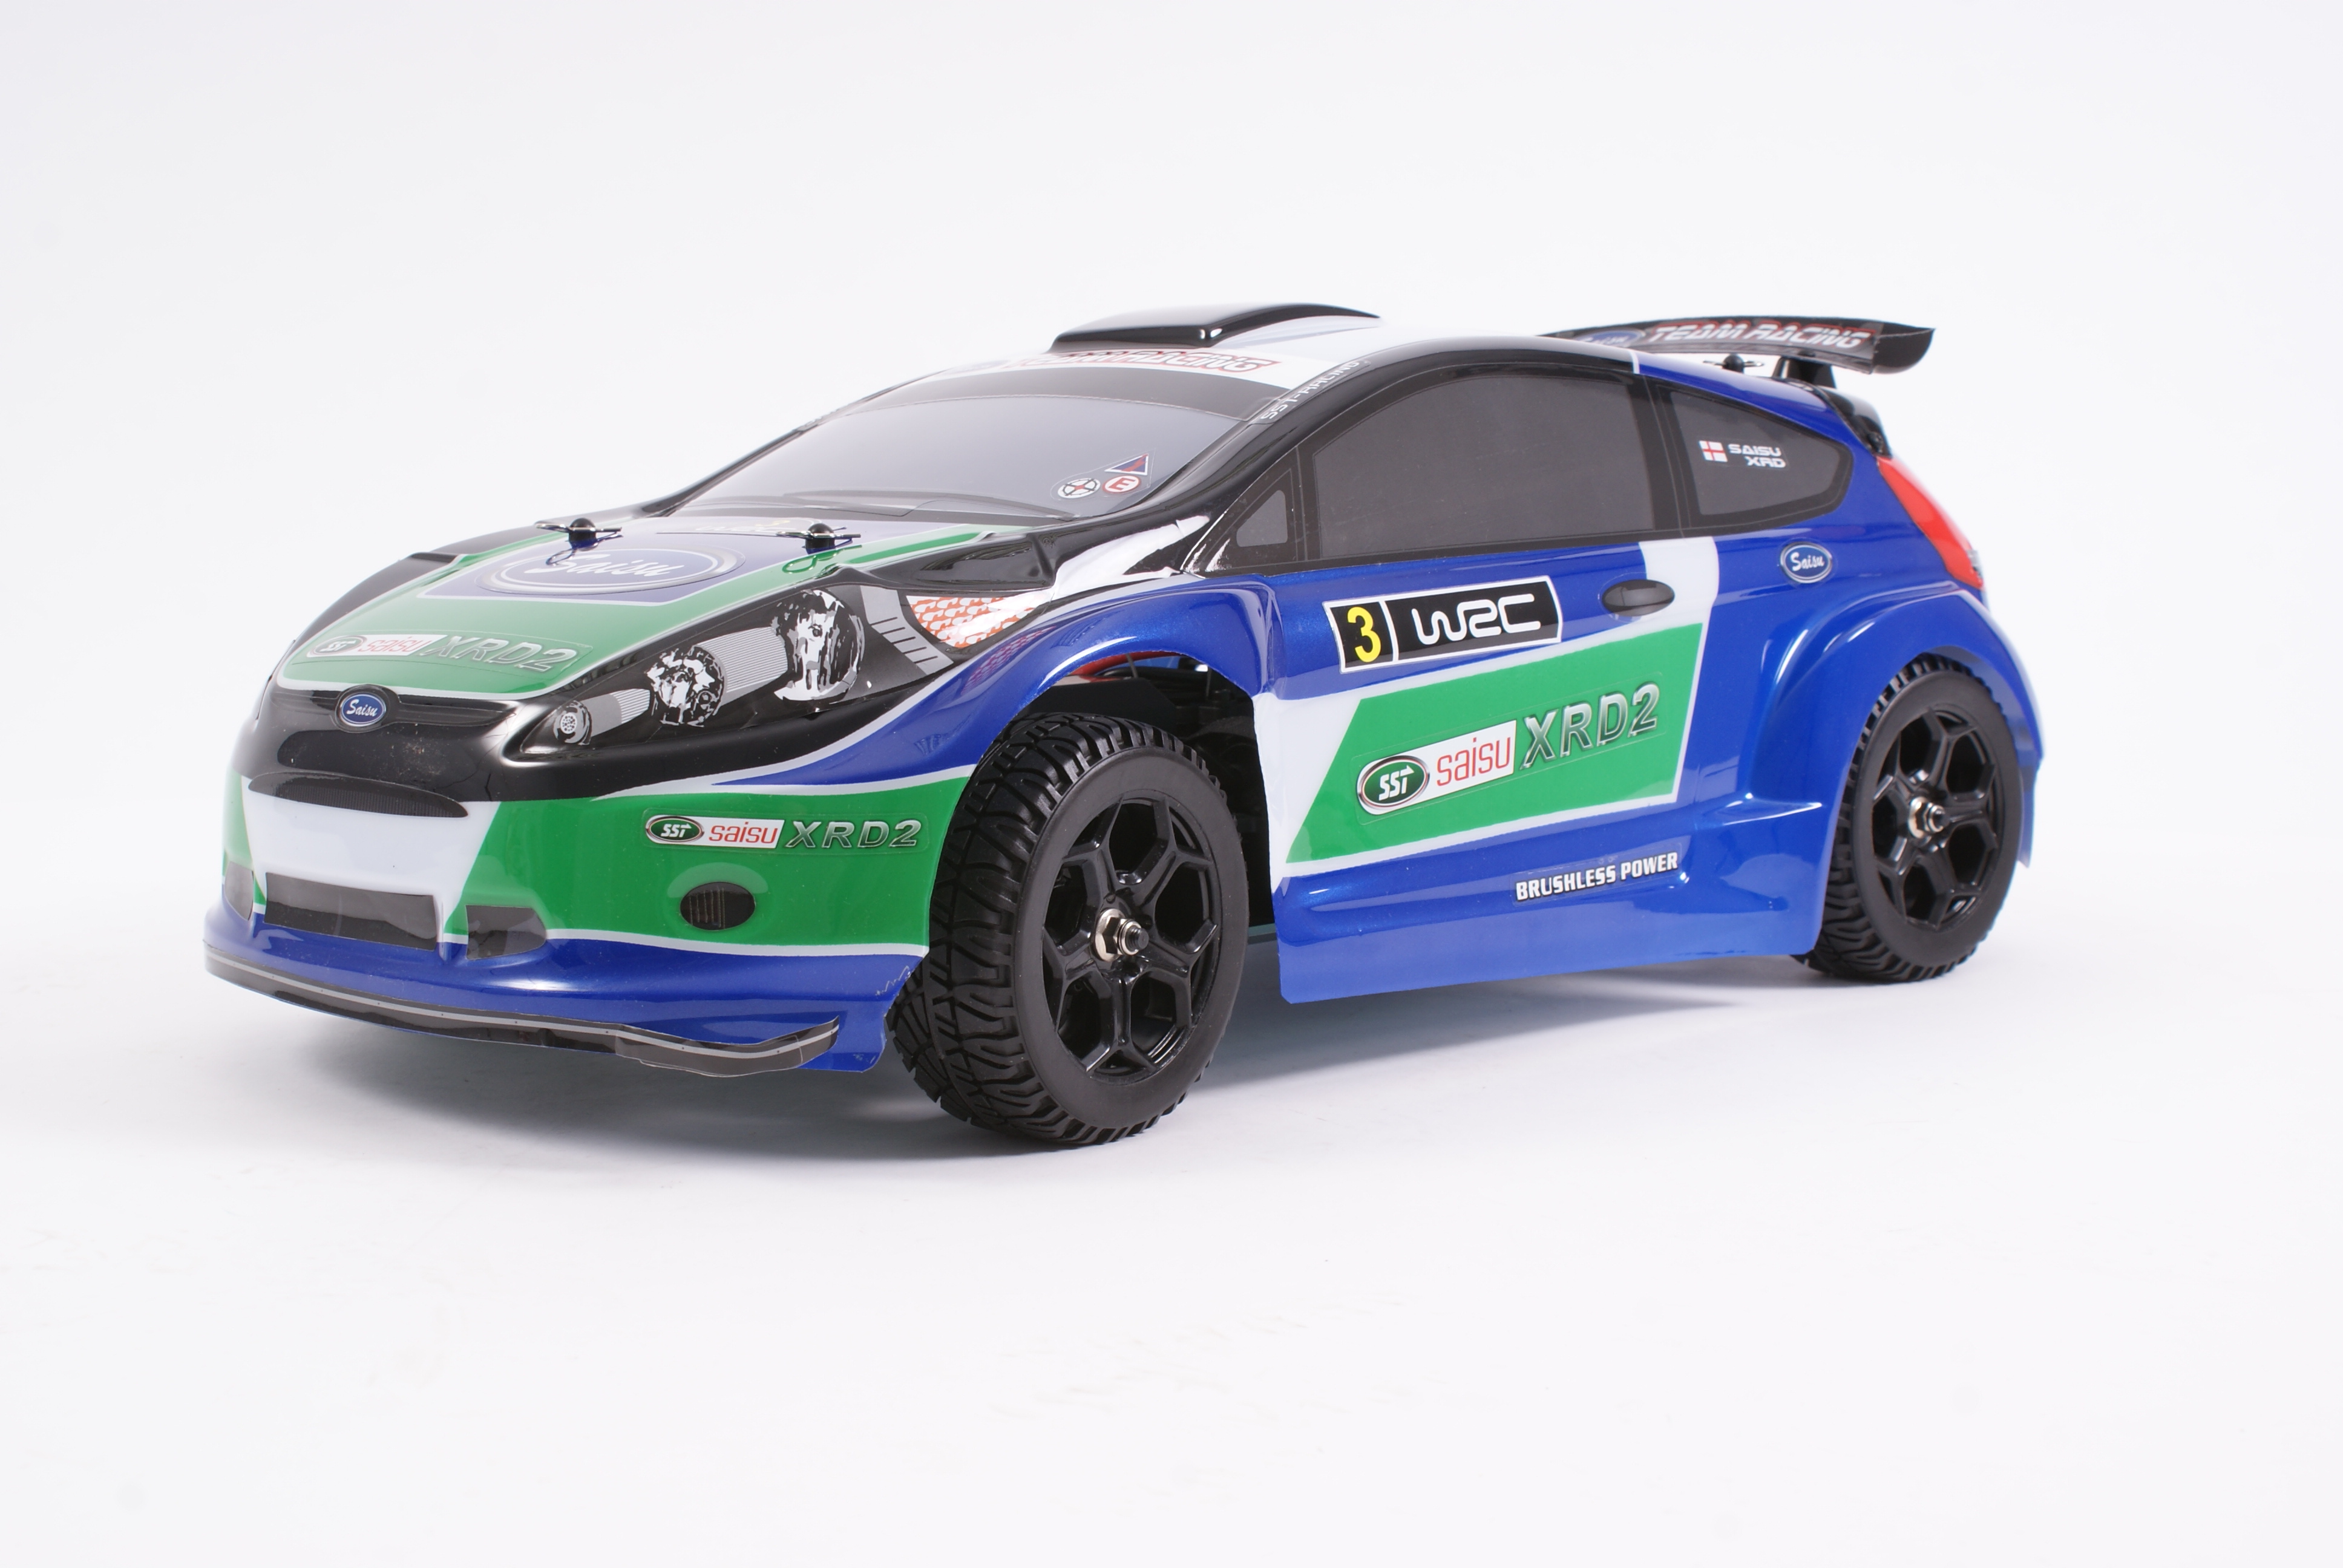 SST RACING - XRD2 RALLY CAR 4WD 1/9TH SCALE RTR B/LESS